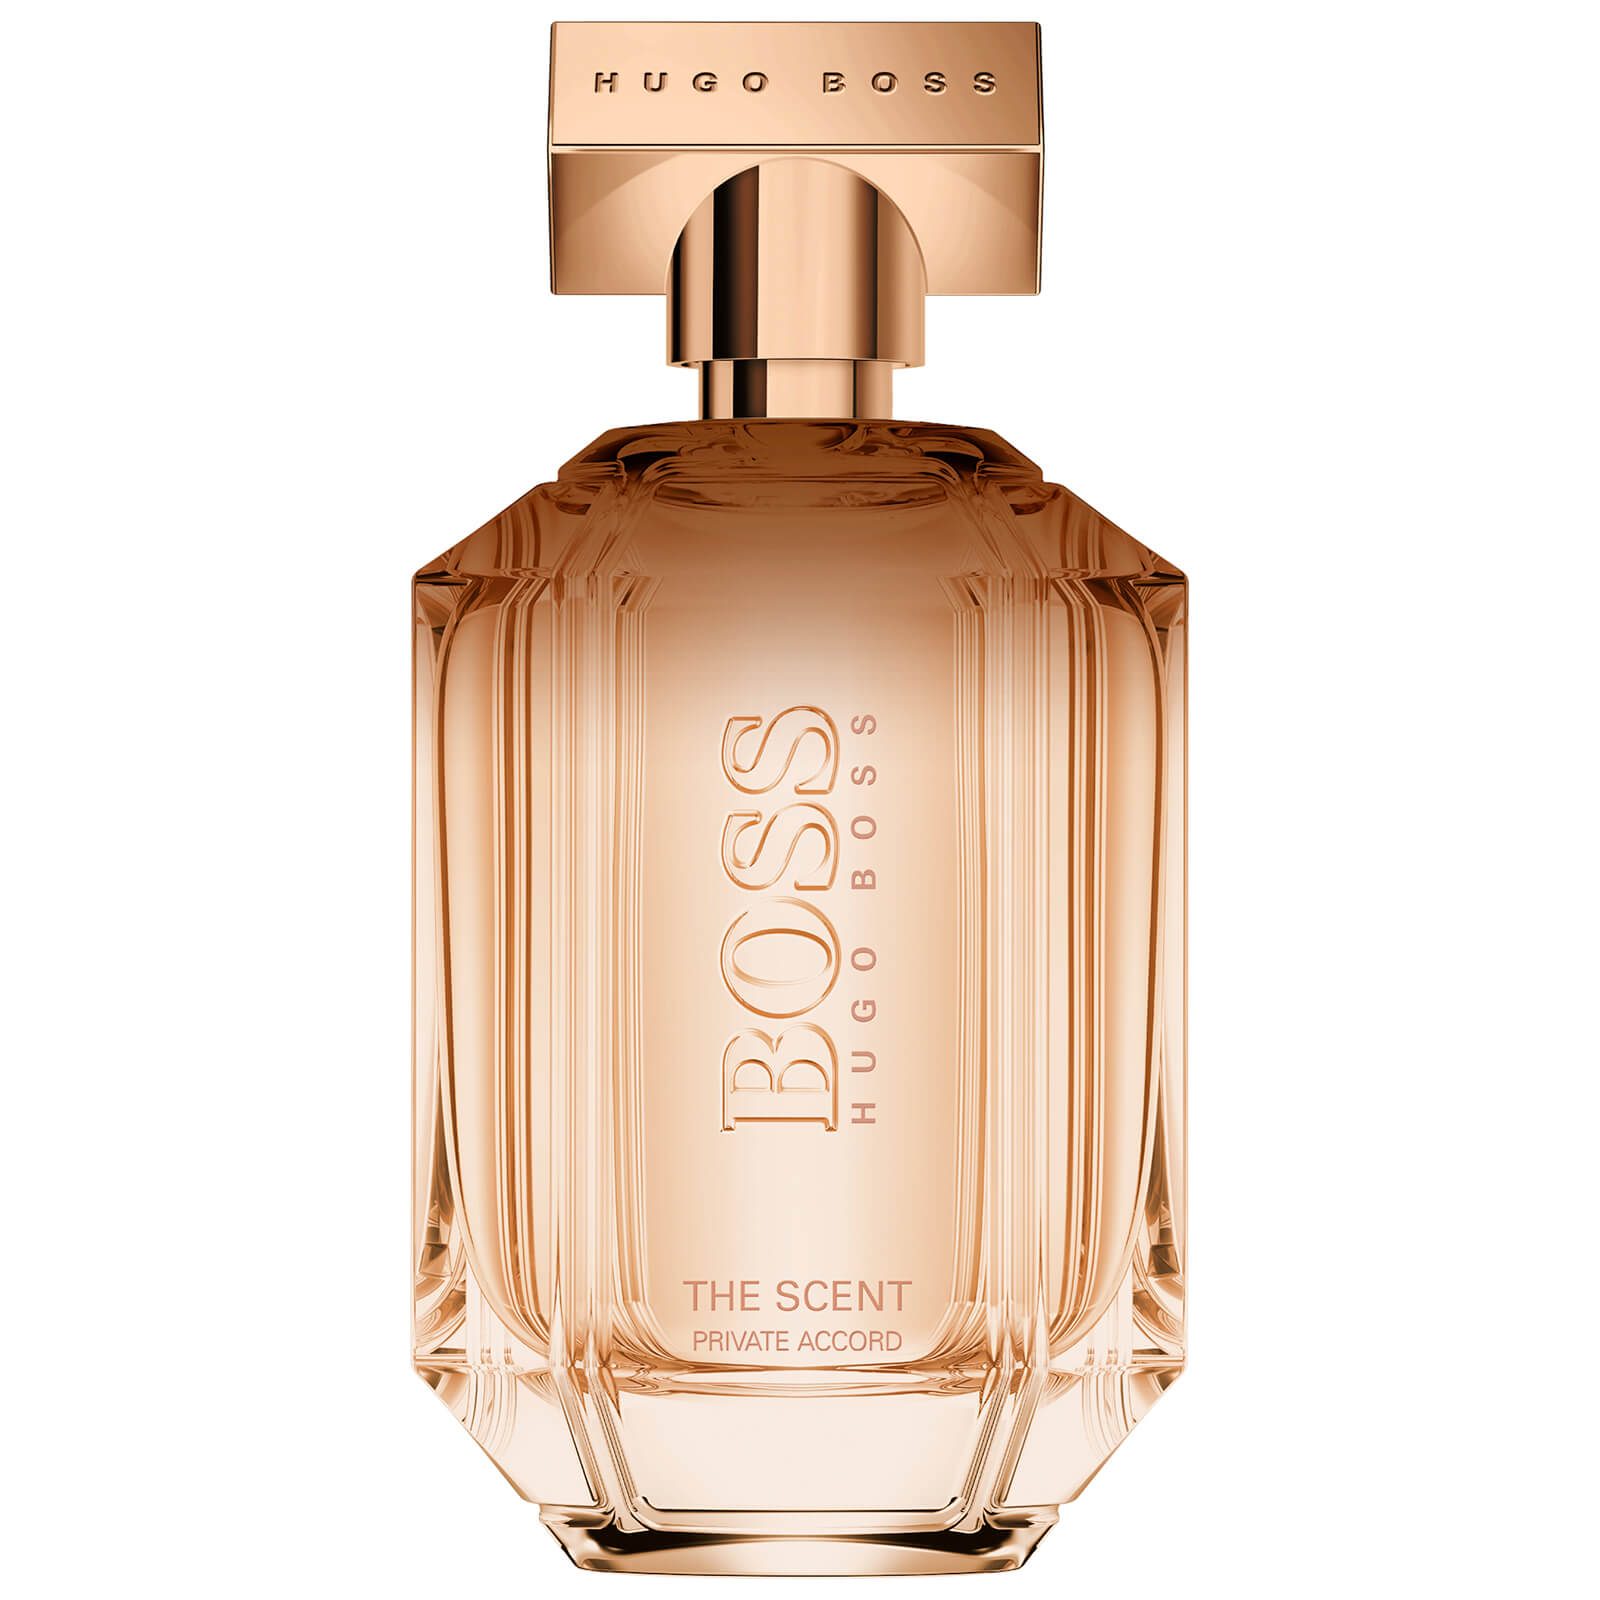 Hugo Boss The Scent Private Accord For Her Eau De Parfum 100ml